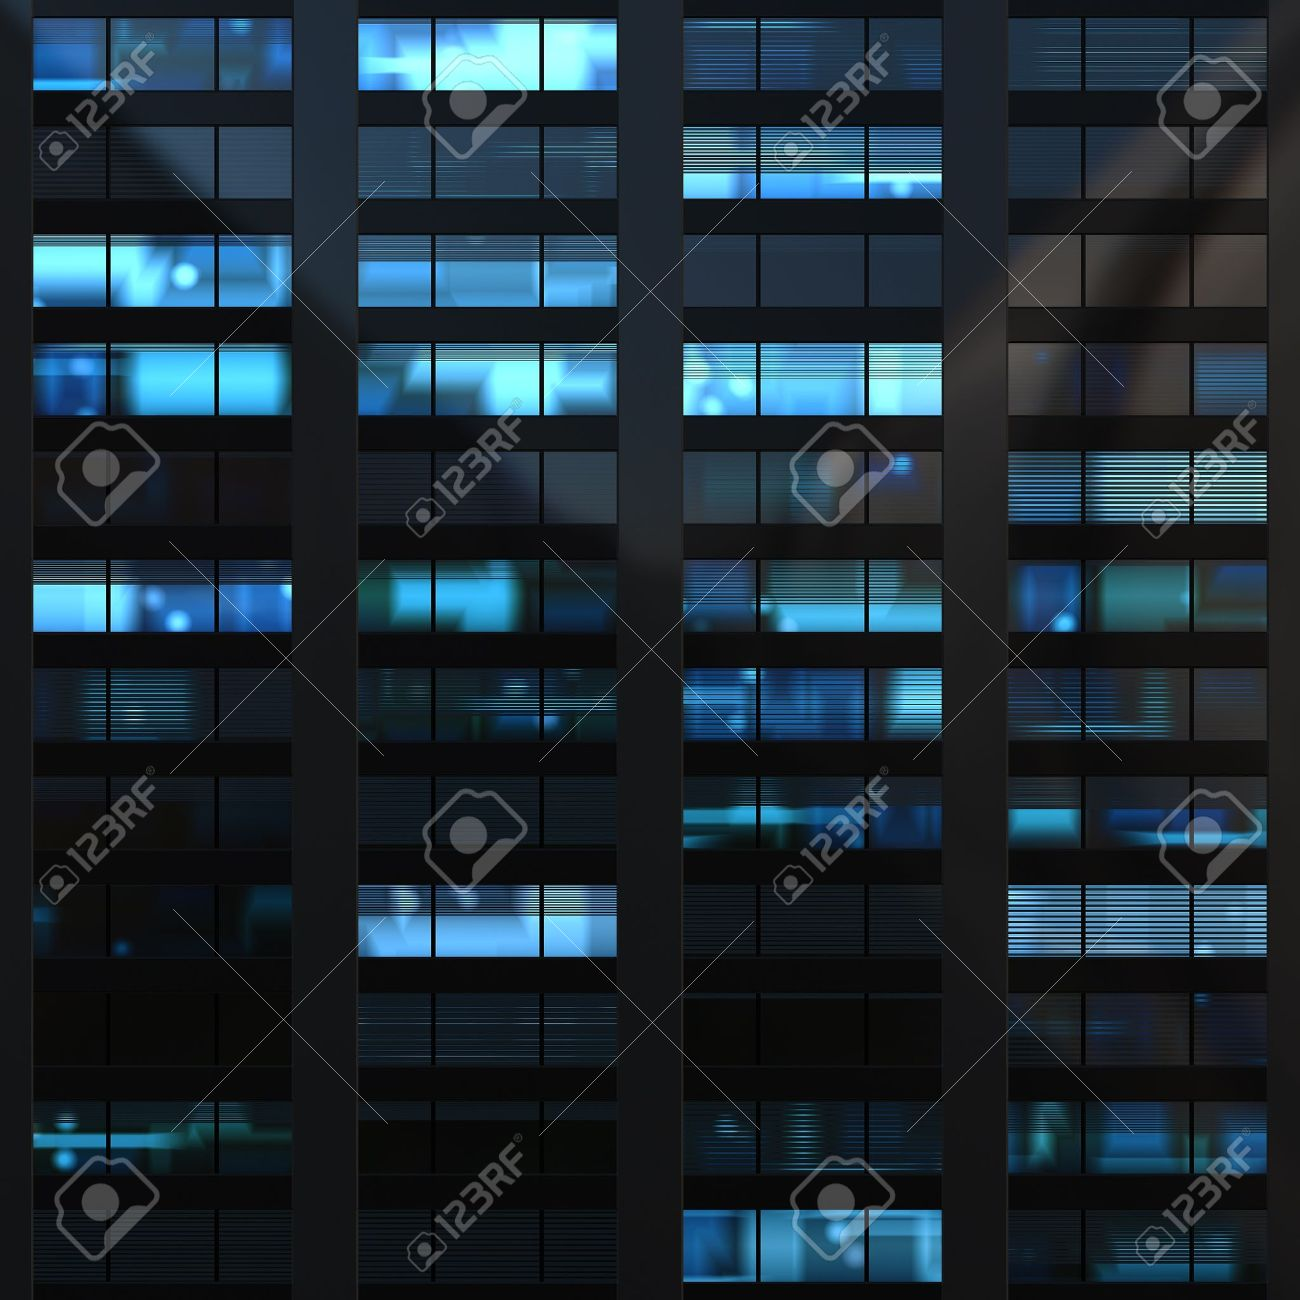 Seamless texture resembling skyscrapers windows at nigh Stock Photo - 10437390